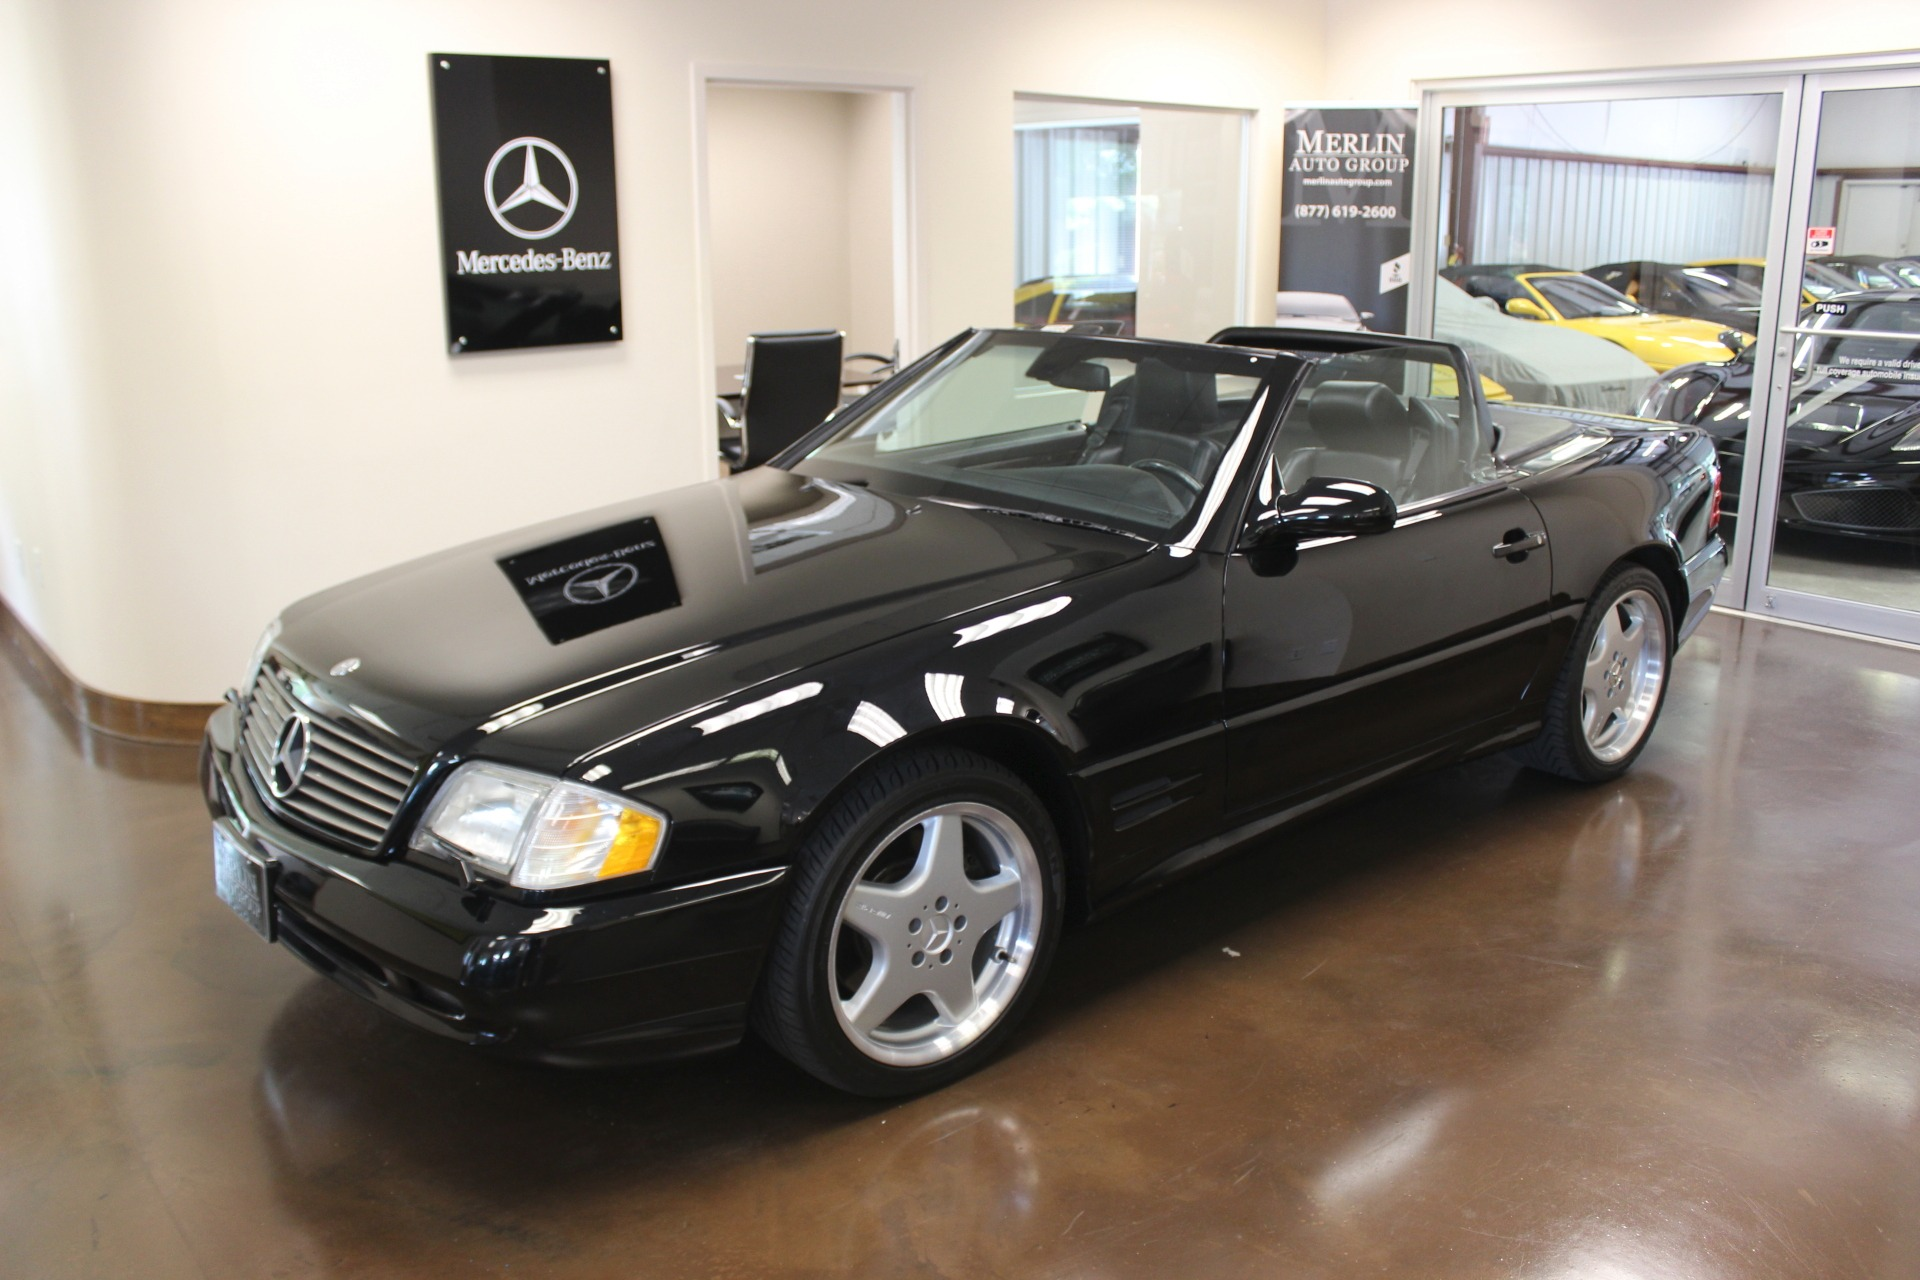 Used 2001 mercedes benz sl class stock p3132 ultra for Mercedes benz sl class sl500